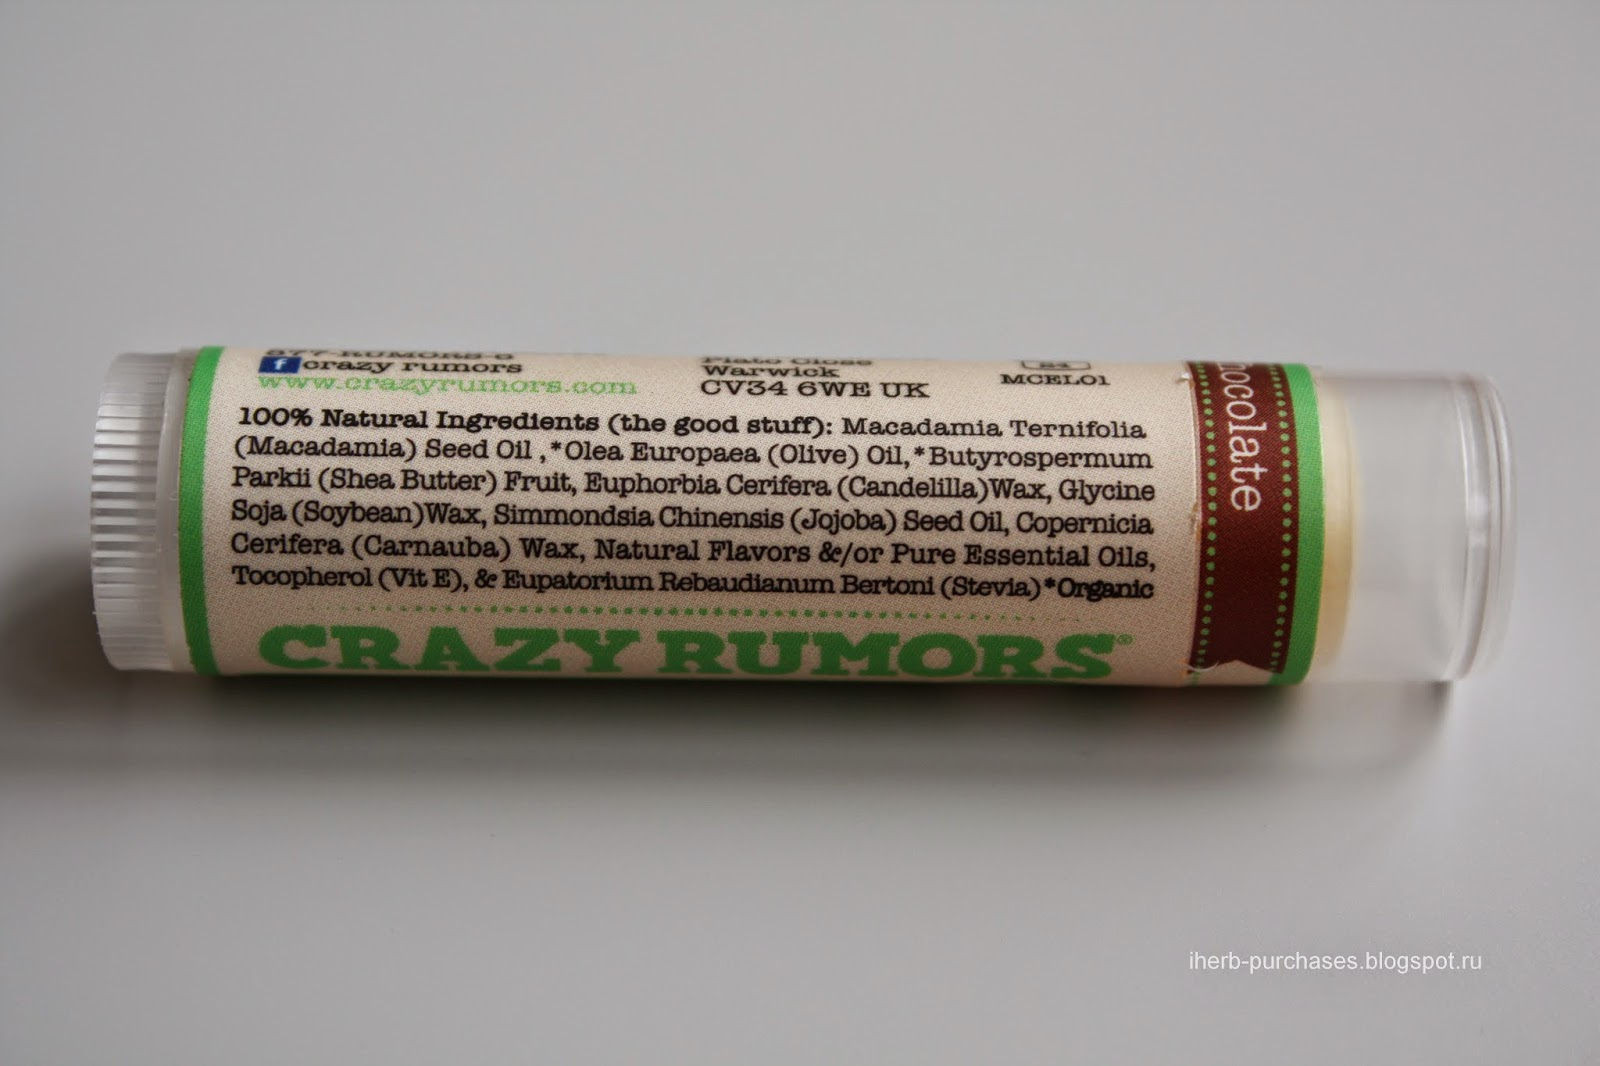 Crazy Rumors, A La Mode, Lip Balm, Mint Chocolate, 0.15 oz (4.2 g)